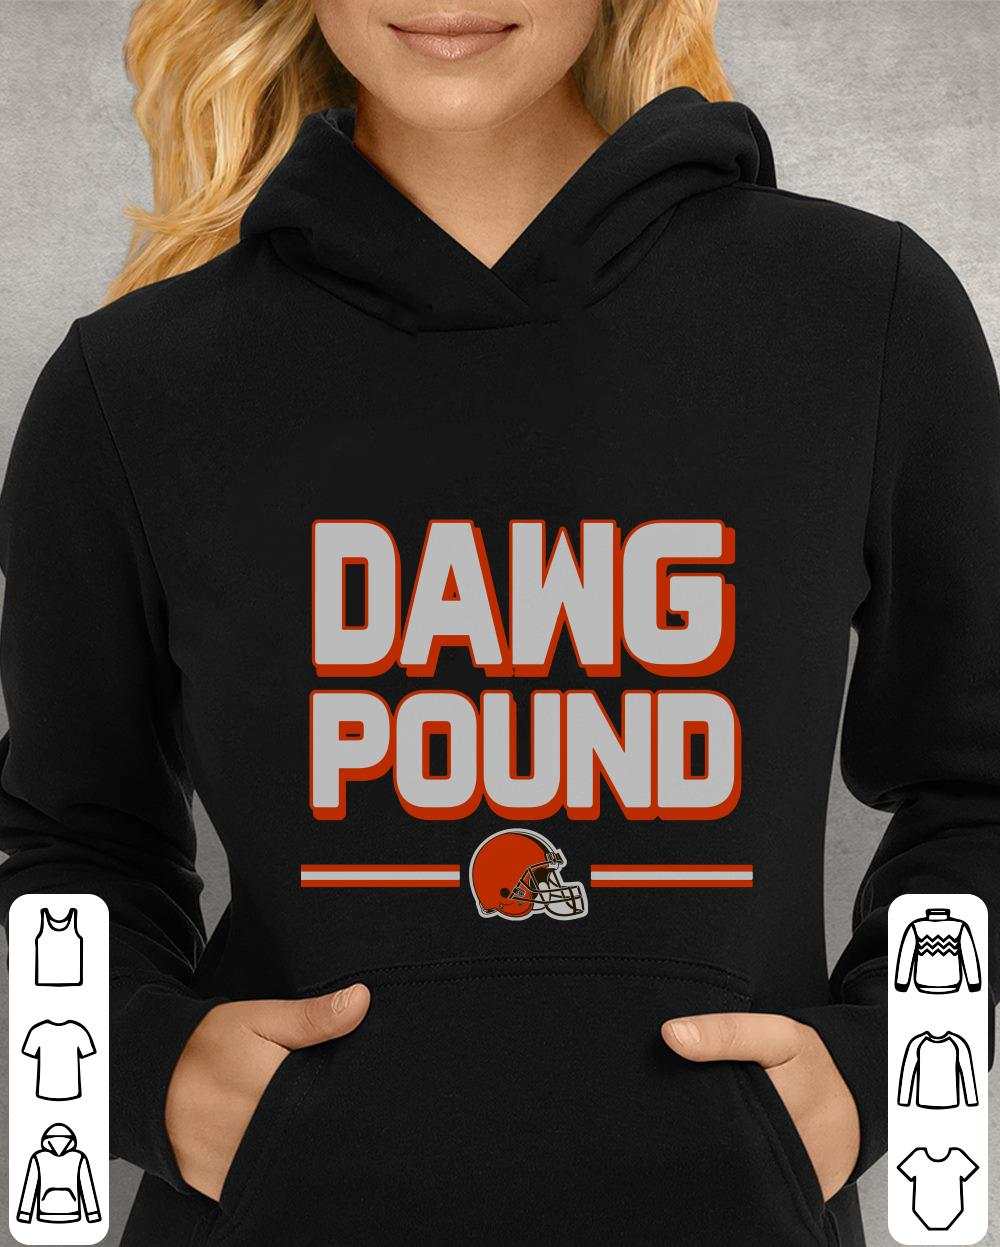 https://unicornshirts.net/images/2018/11/l-Cleveland-Dawg-Pound-shirt_4.jpg